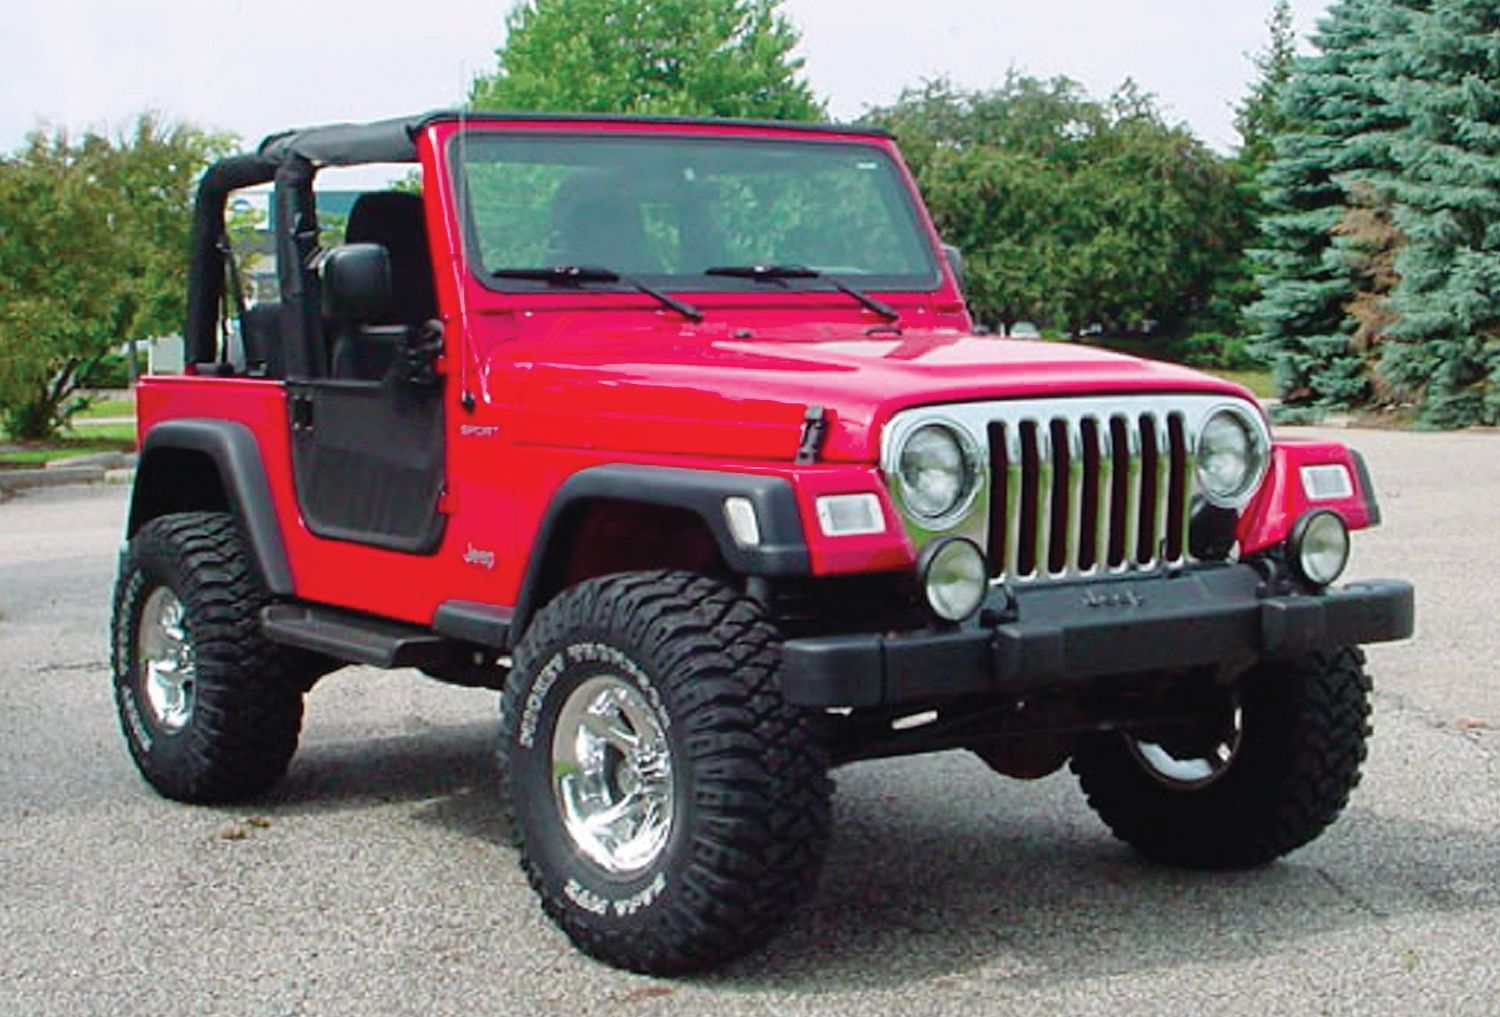 Buying Used Jeep Wrangler Tj 4x4 Magazine Jeep Wrangler Tj Jeep Wrangler Wrangler Tj